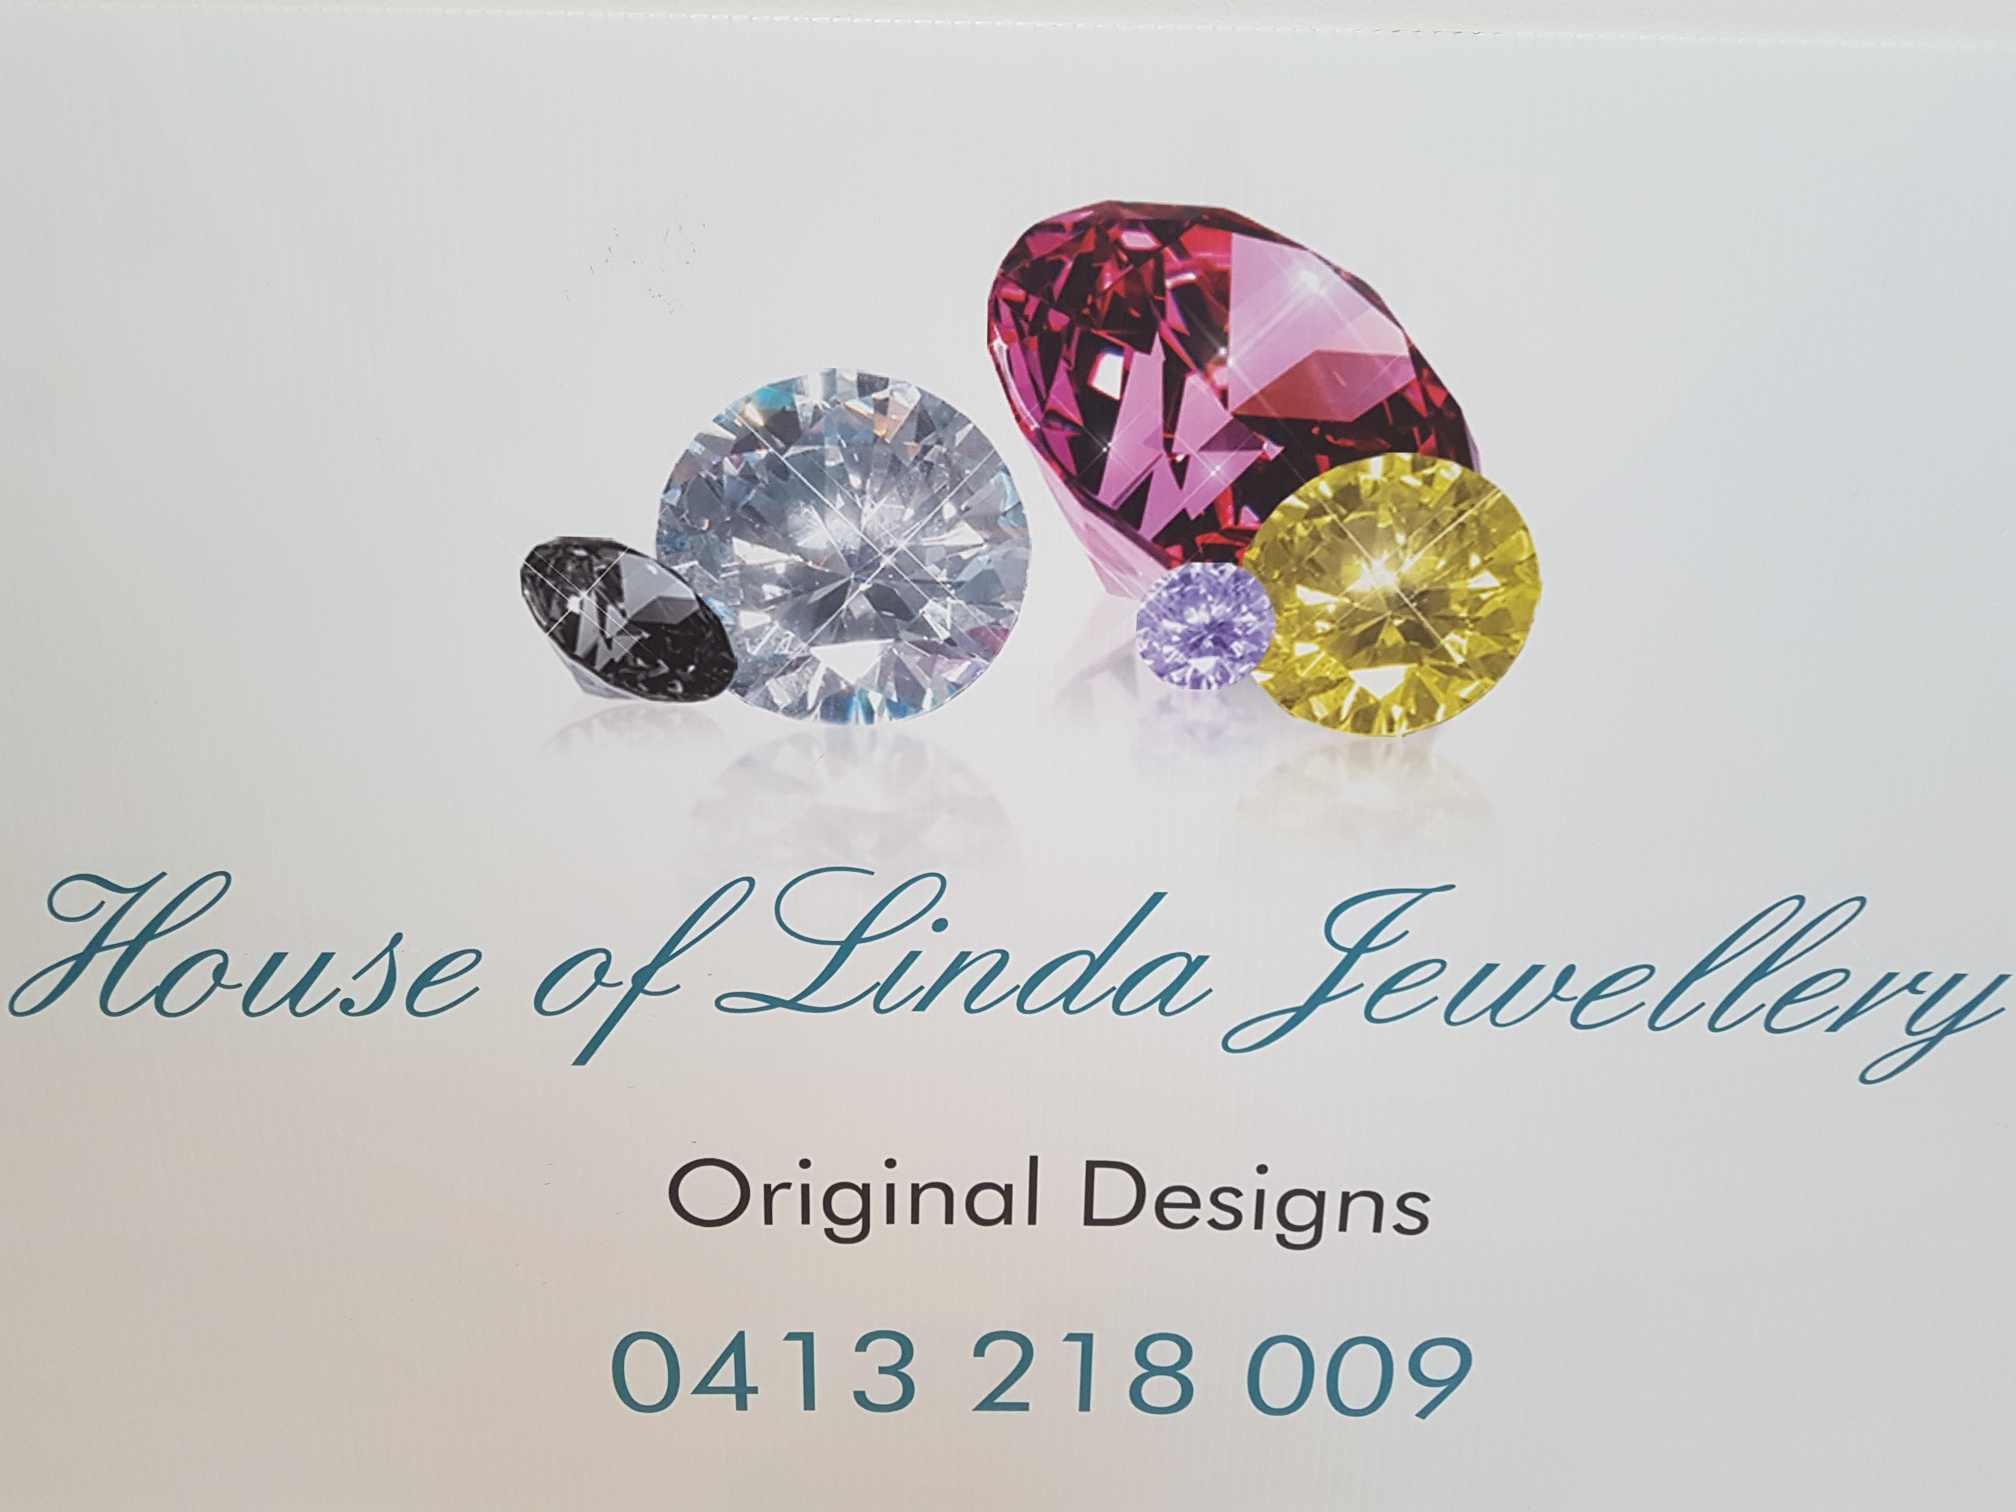 House of Linda Jewellery